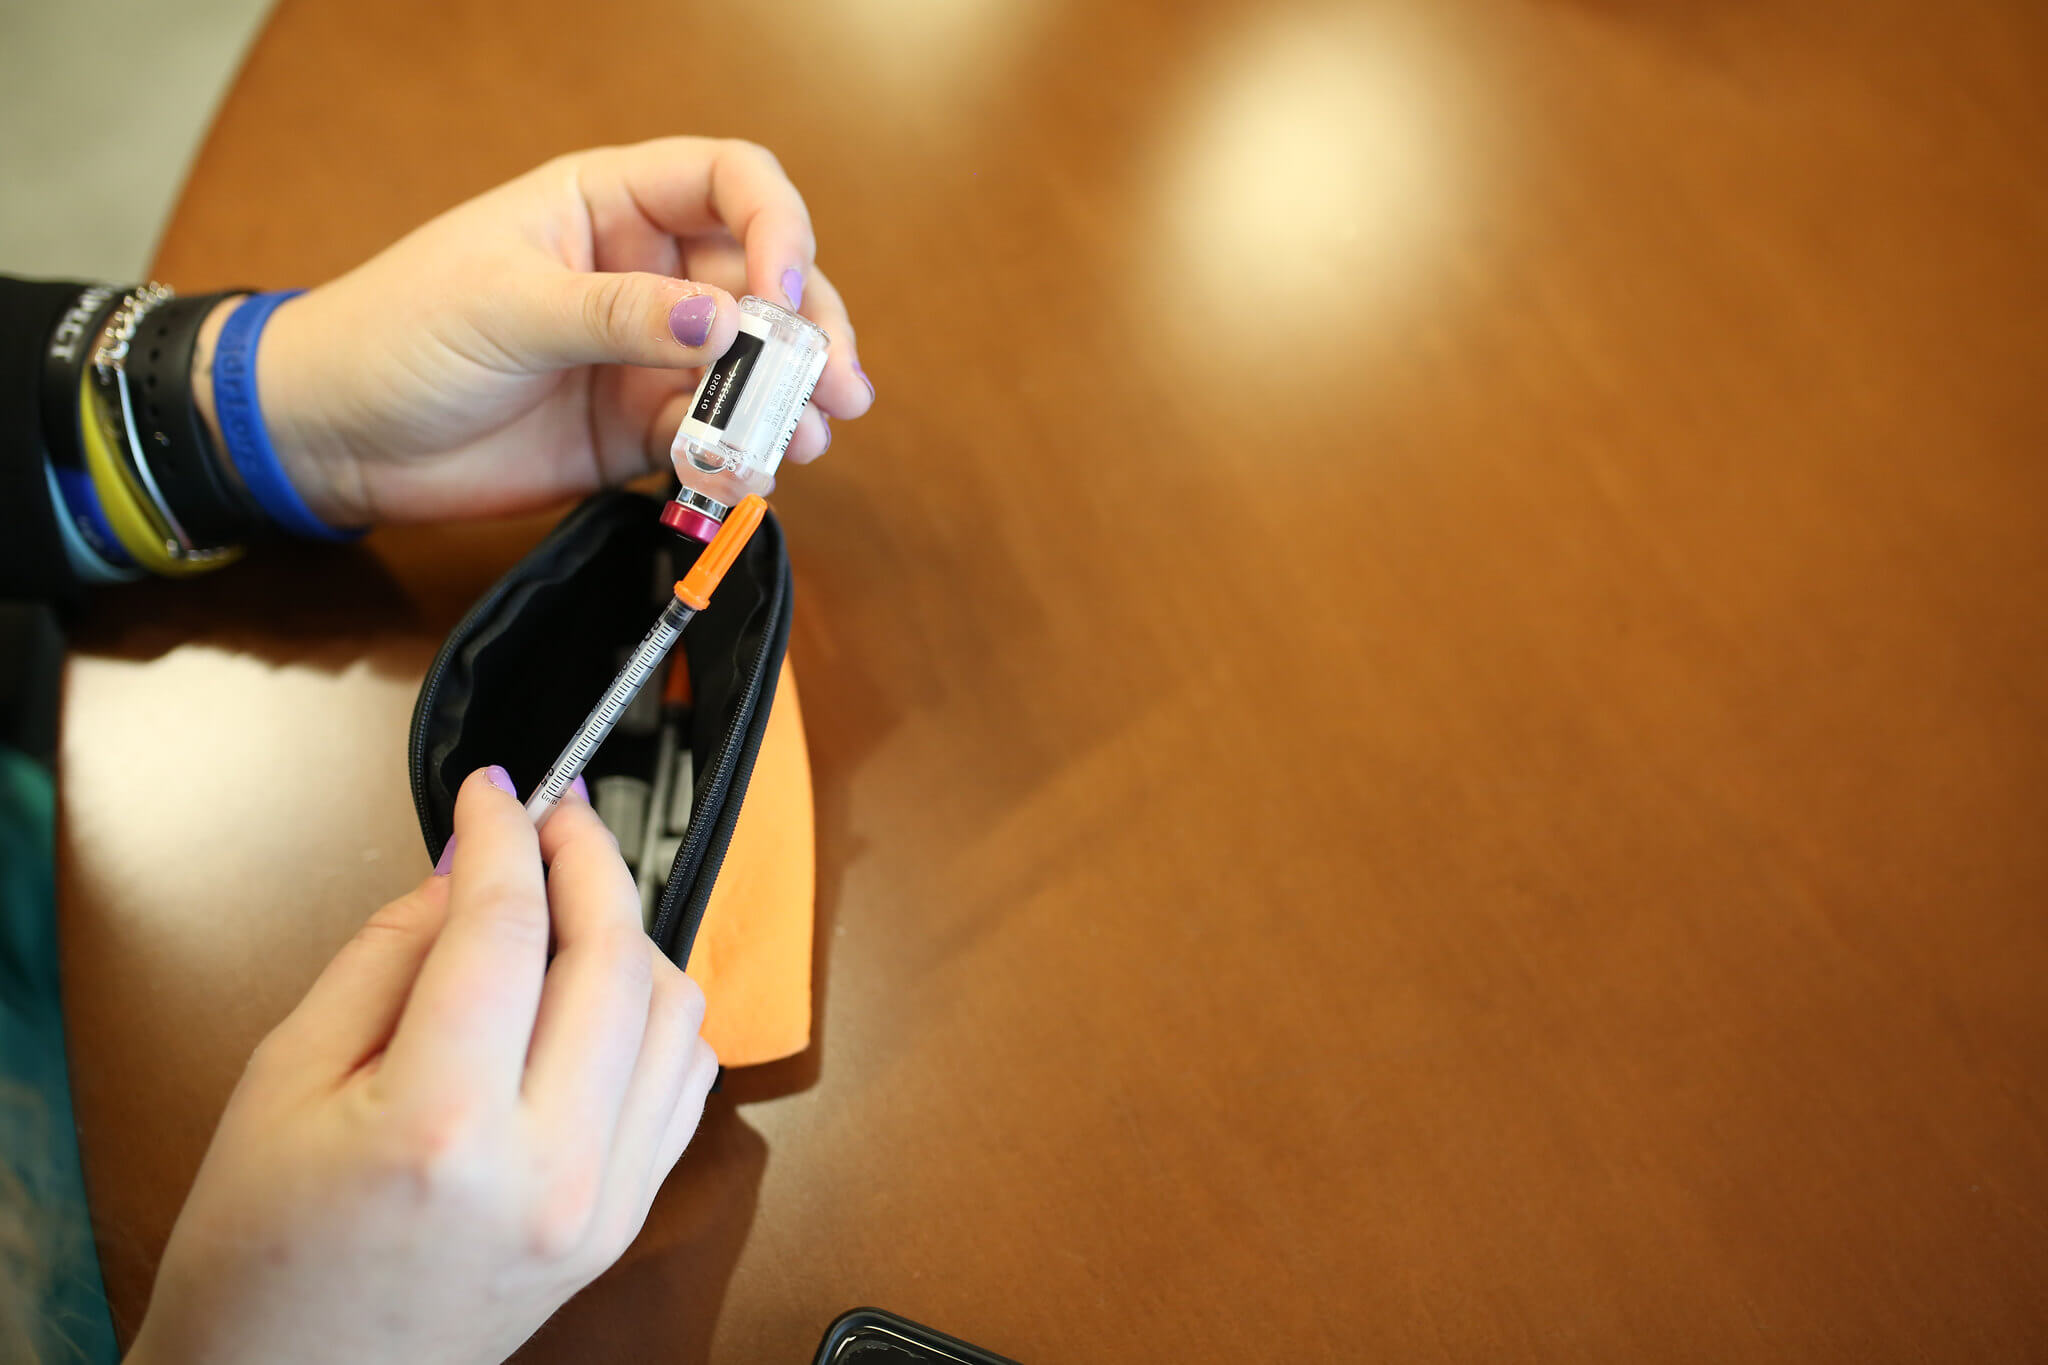 Person holding an insulin and syringe while on table